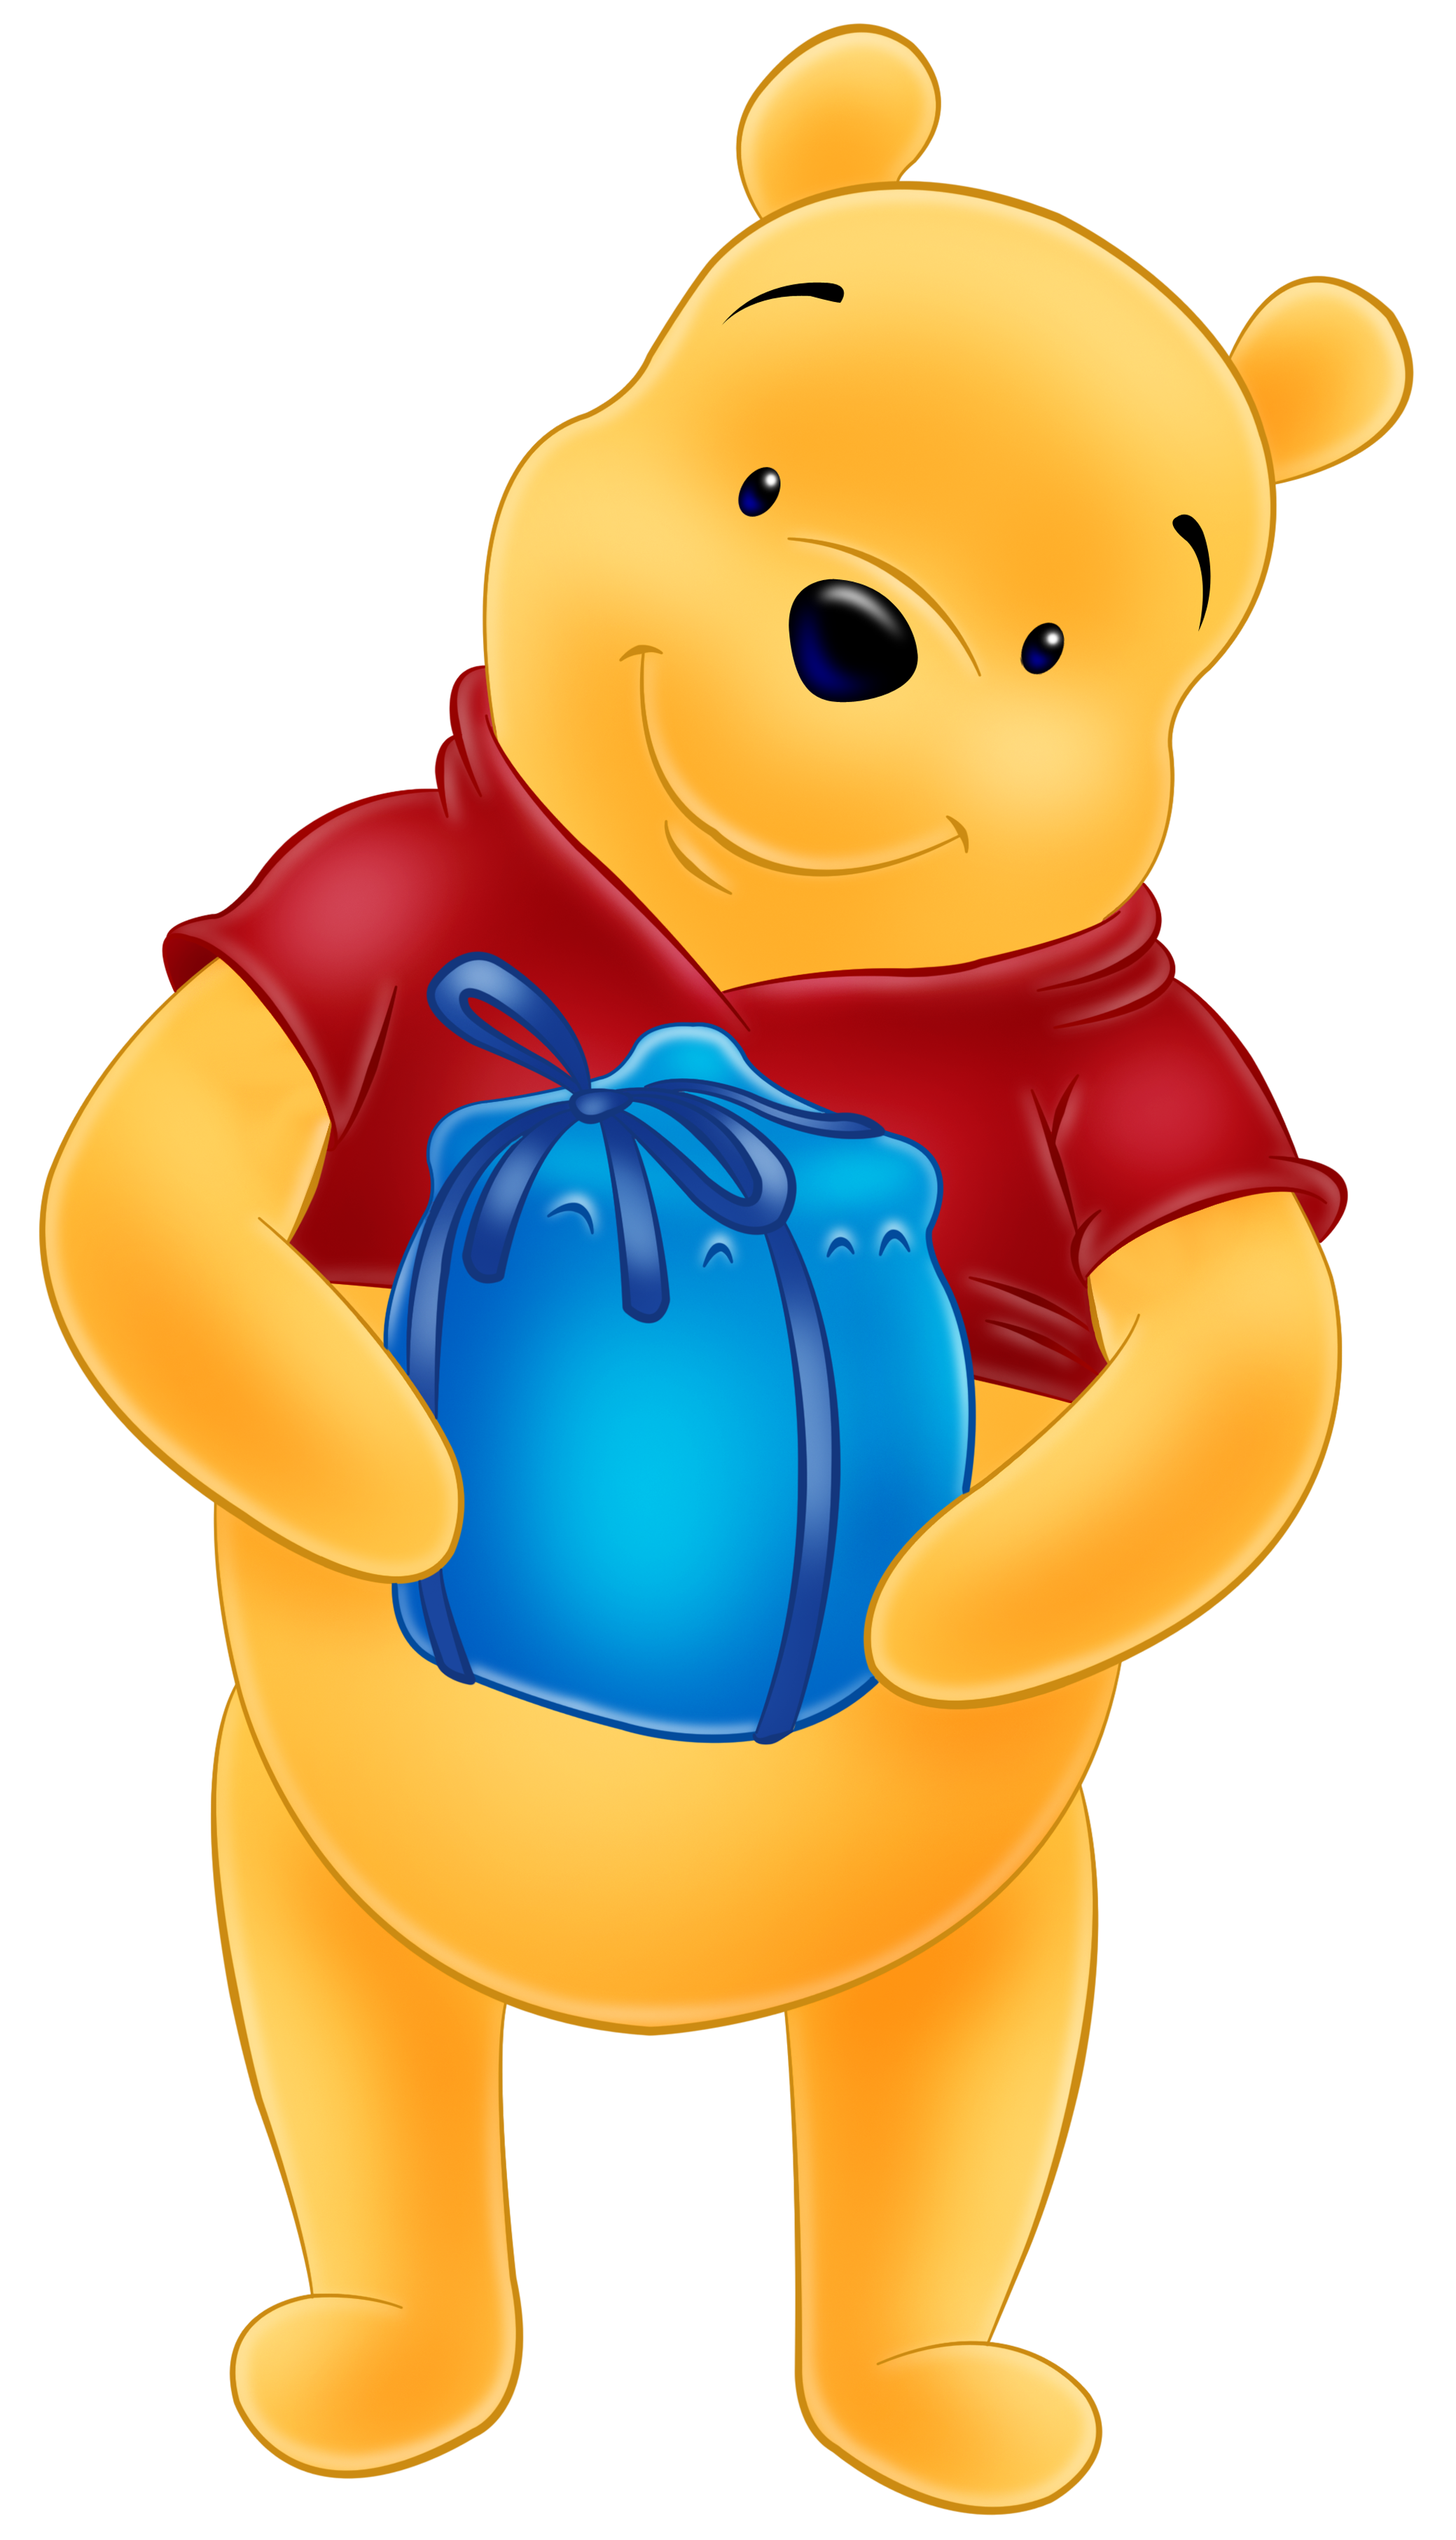 baby pooh clipart at getdrawings com free for personal use baby rh getdrawings com Winnie the Pooh and Friends Clip Art Eeyore Clip Art